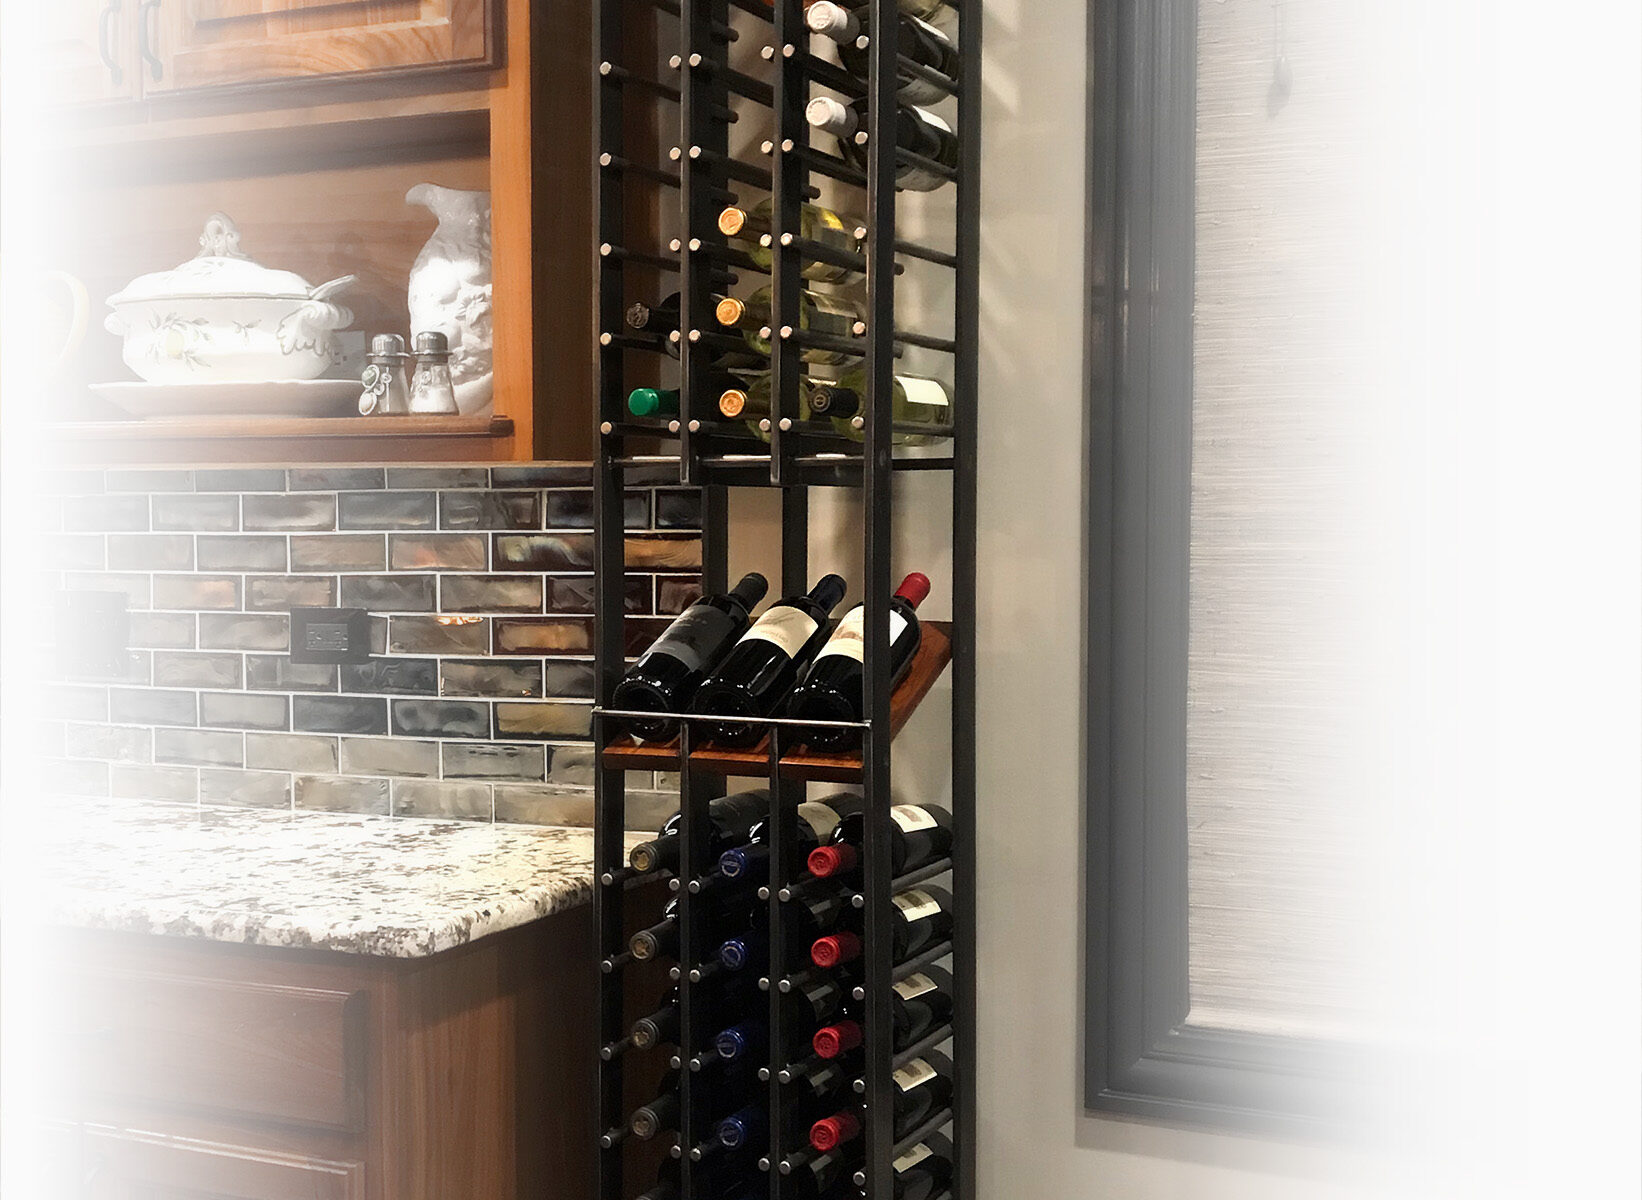 Tall wine rack between kitchen cabinets & a window